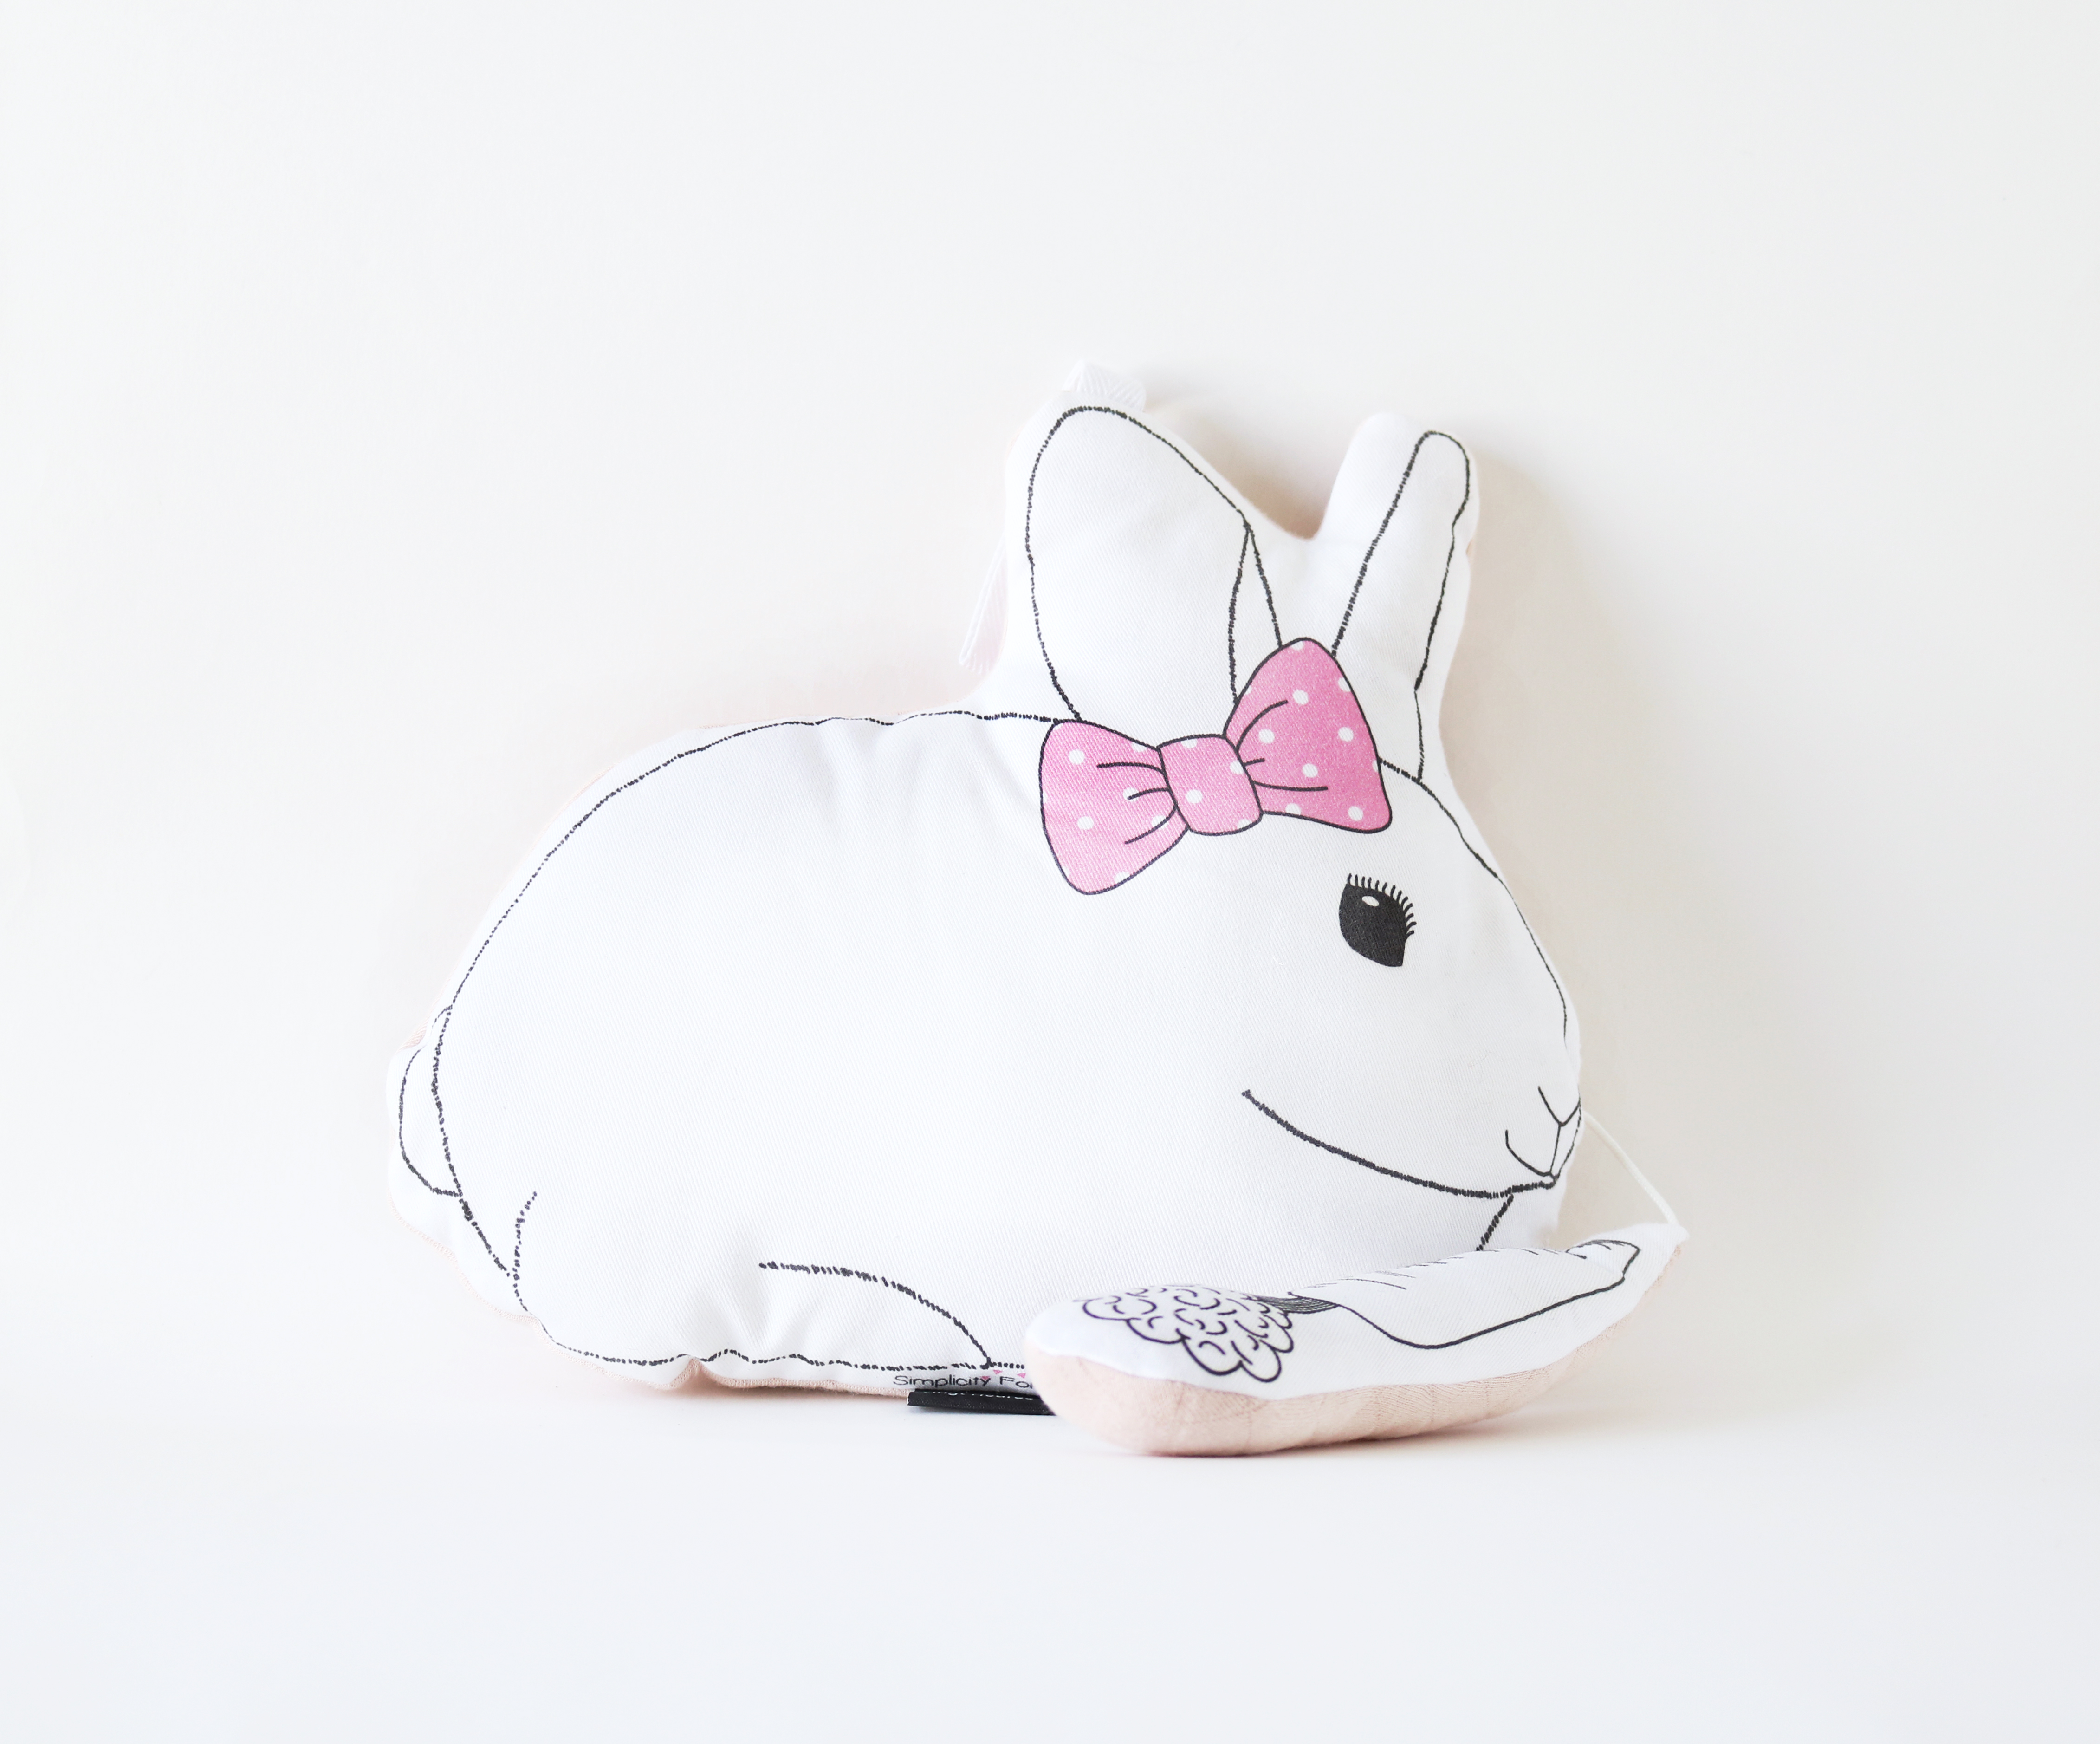 Coussin musical Lapin et sa carotte mélodie Happy de P. William